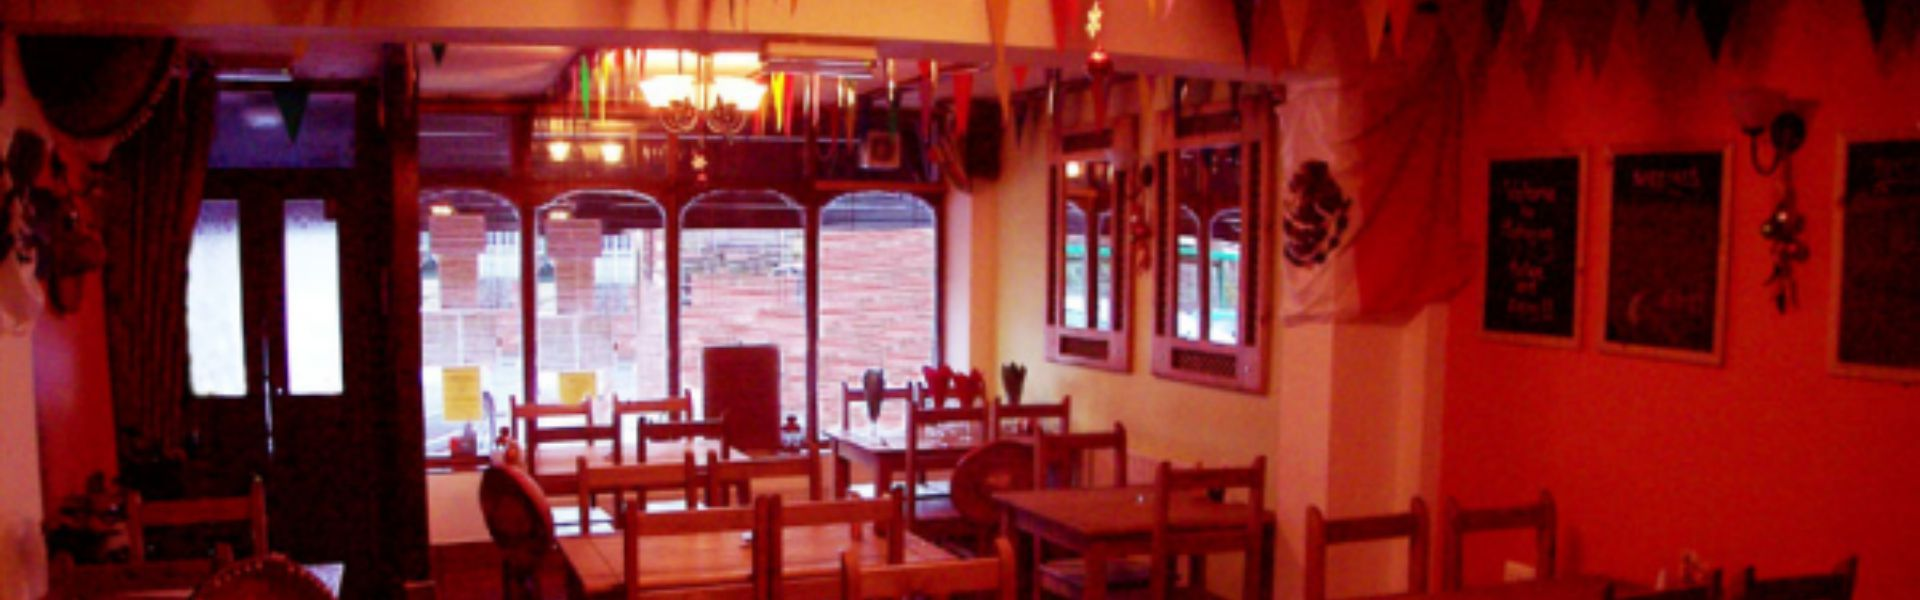 Mexican Restaurant Stockton On Tees